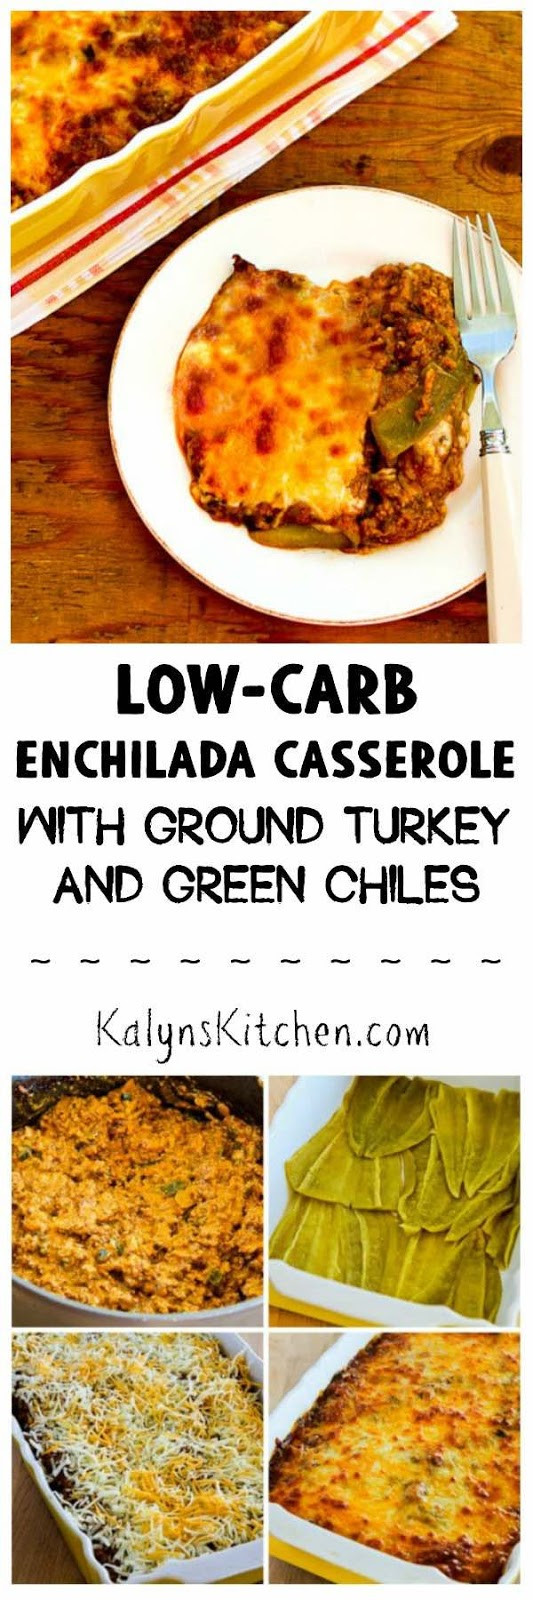 Ground Turkey Casserole Low Carb  Kalyn s Kitchen Low Carb Enchilada Casserole with Ground